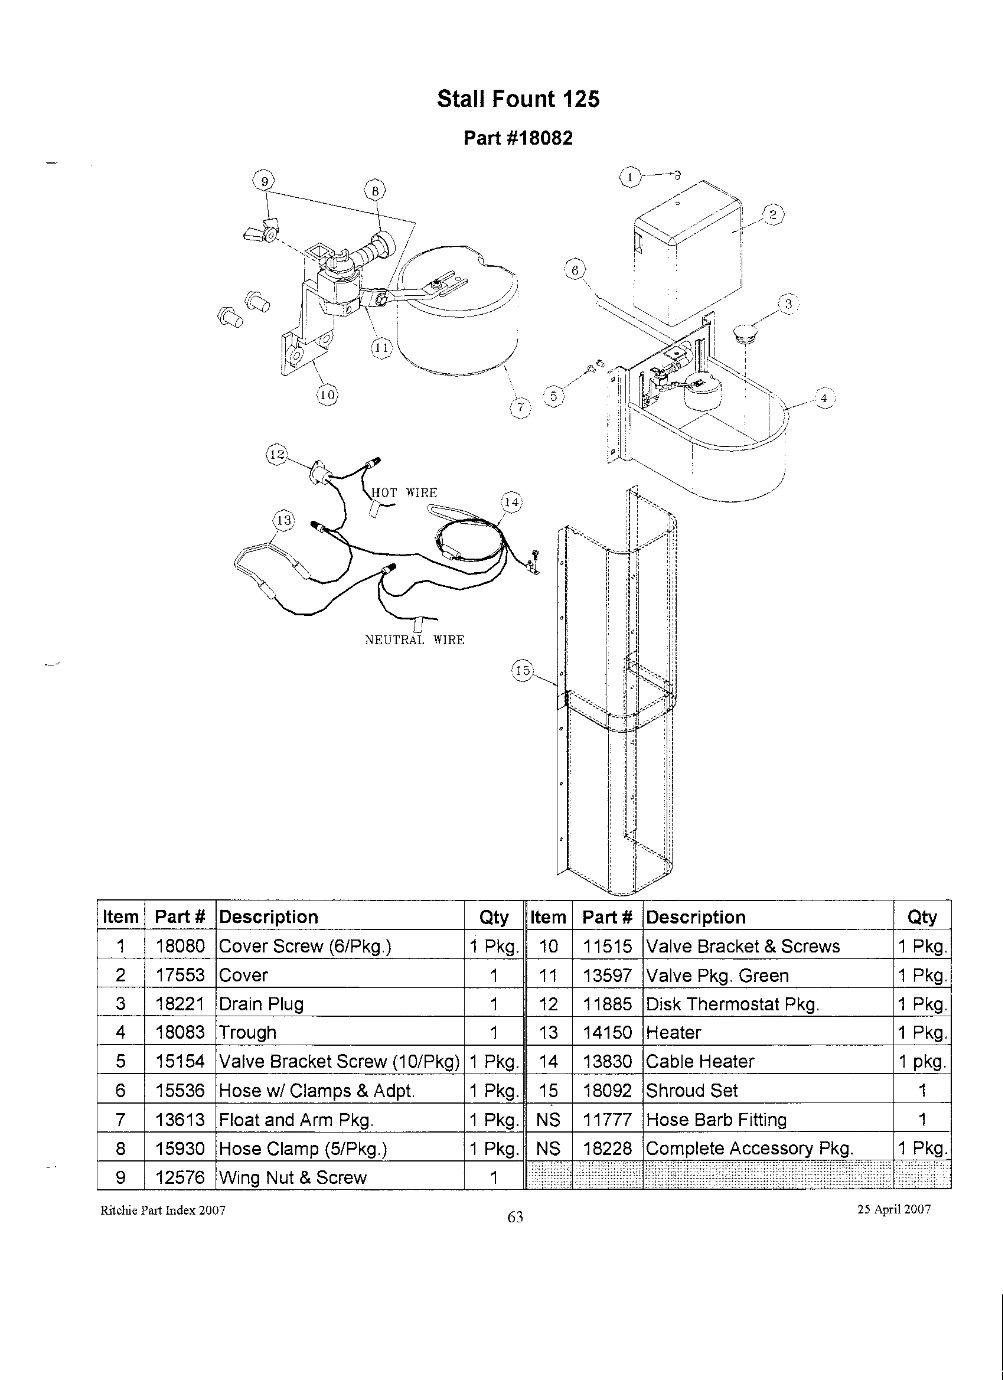 stall fount 125 parts